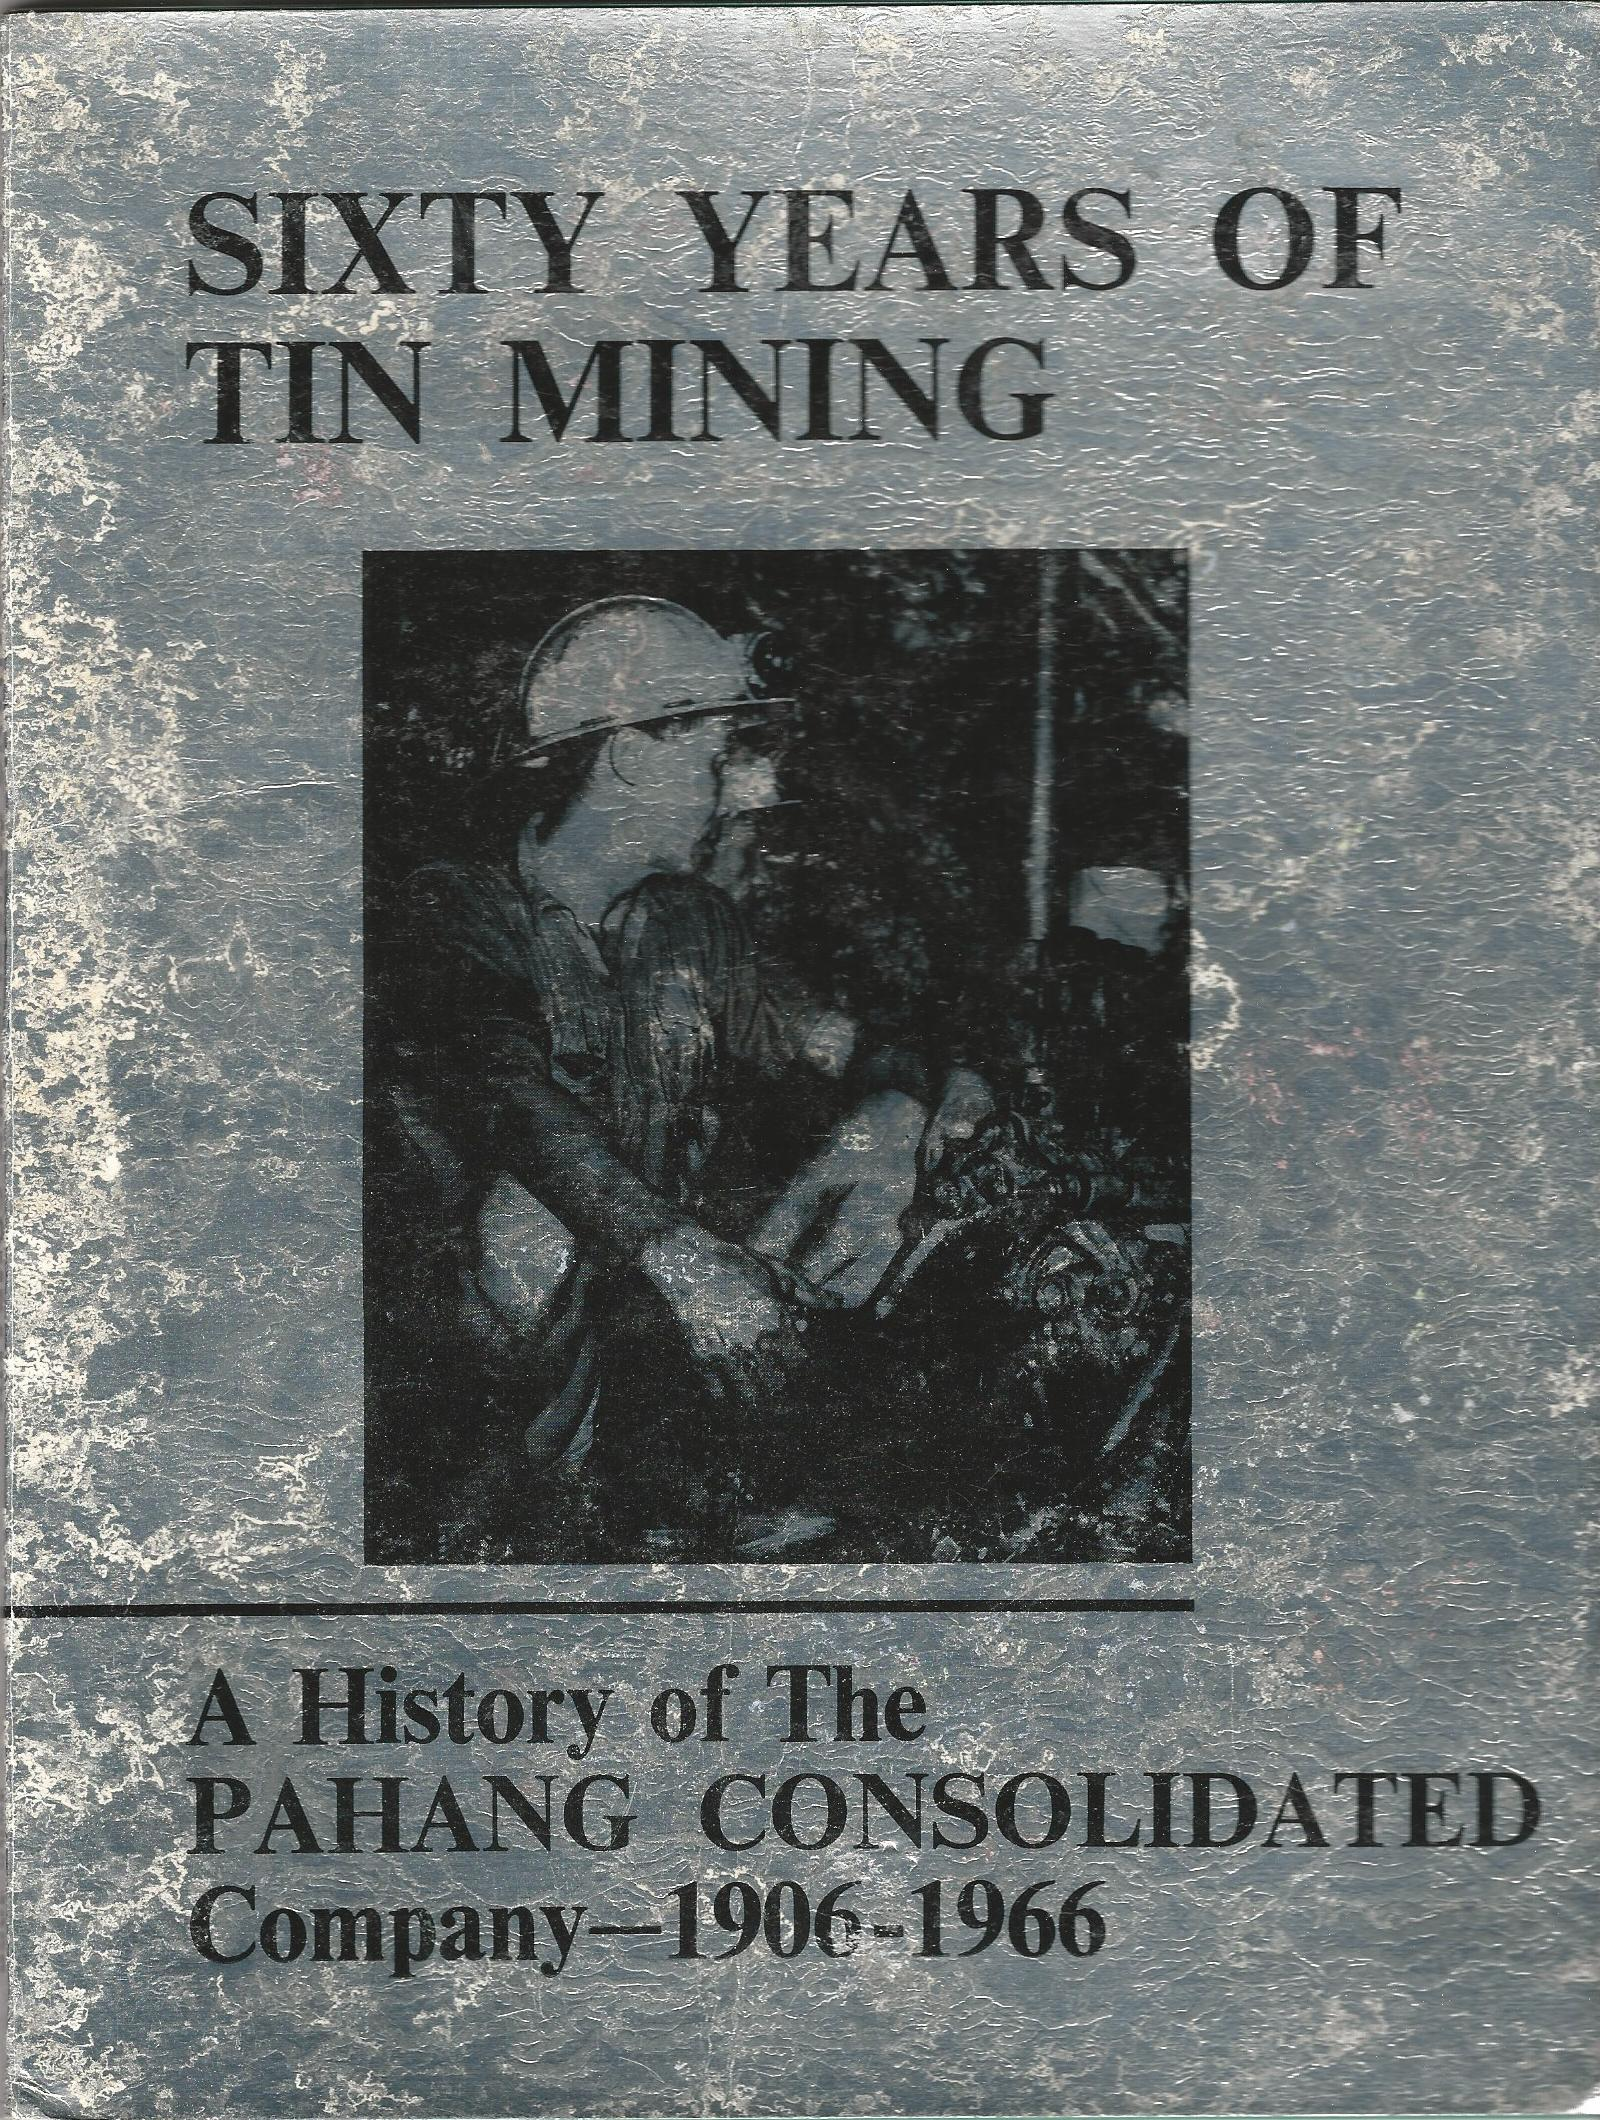 Sixty Years of Tin Mining: A History of The Pahang Consolidated Company - 1906-1966